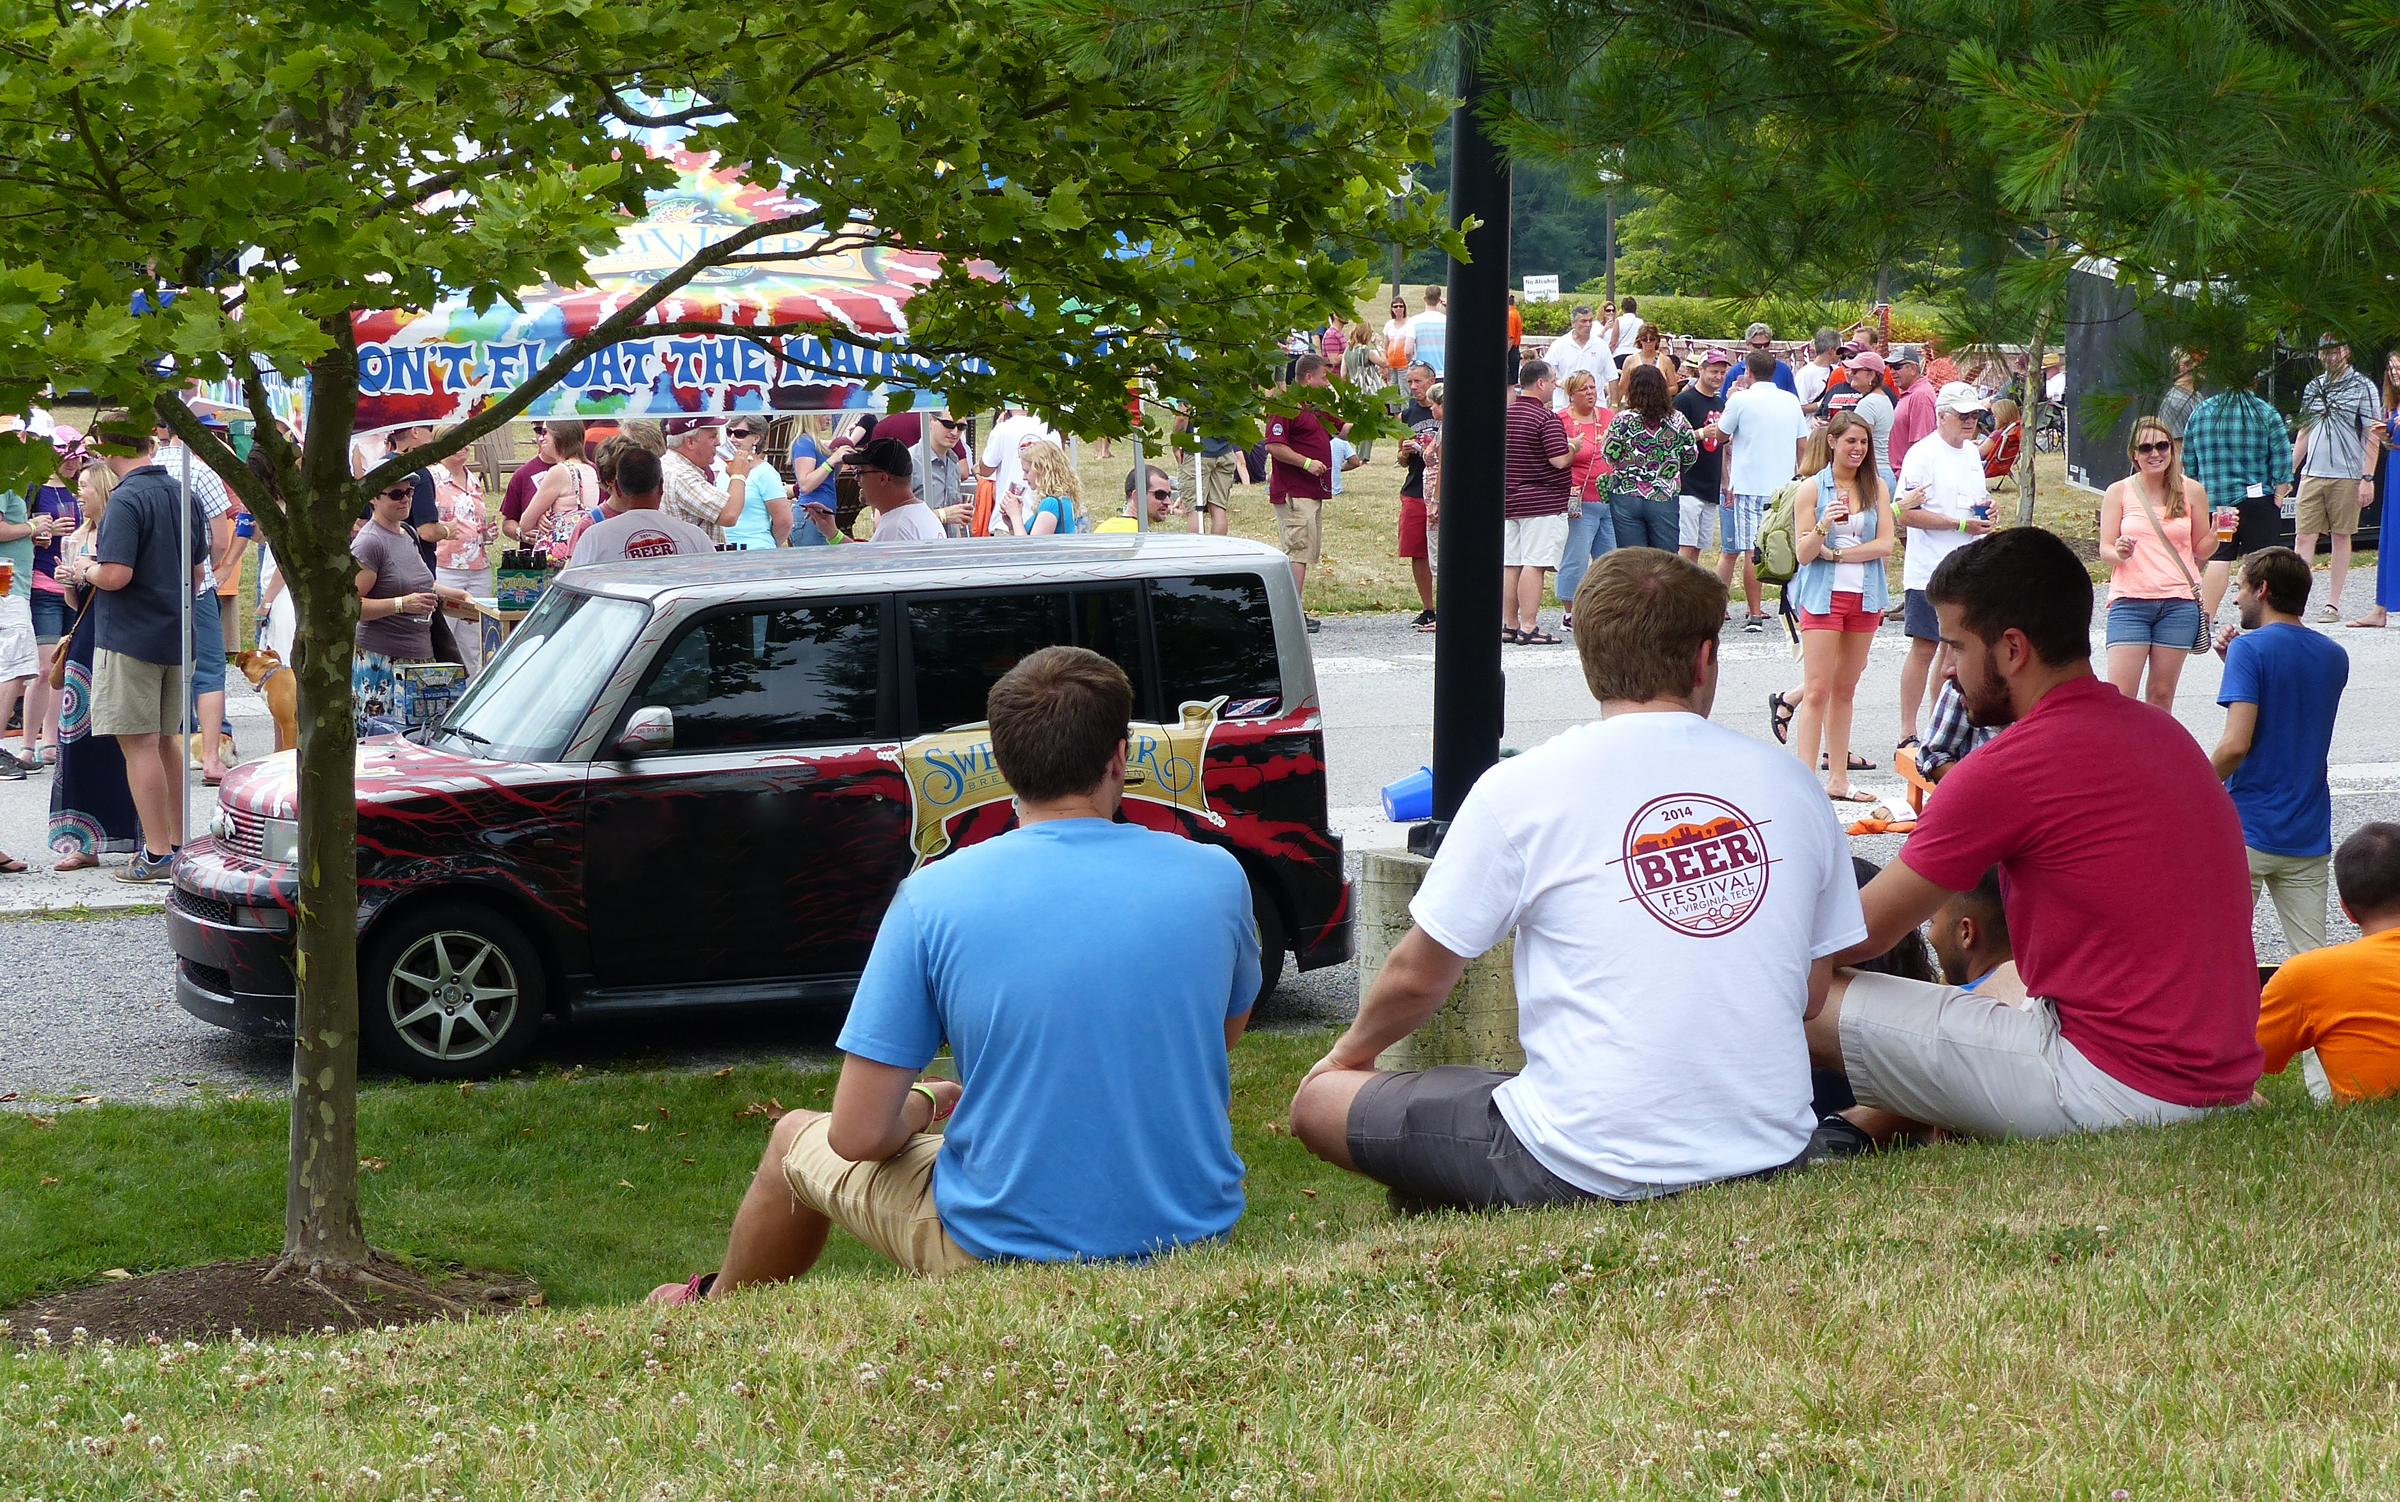 The Virginia Tech Alumni Association's summer beer festival is scheduled for June 27.